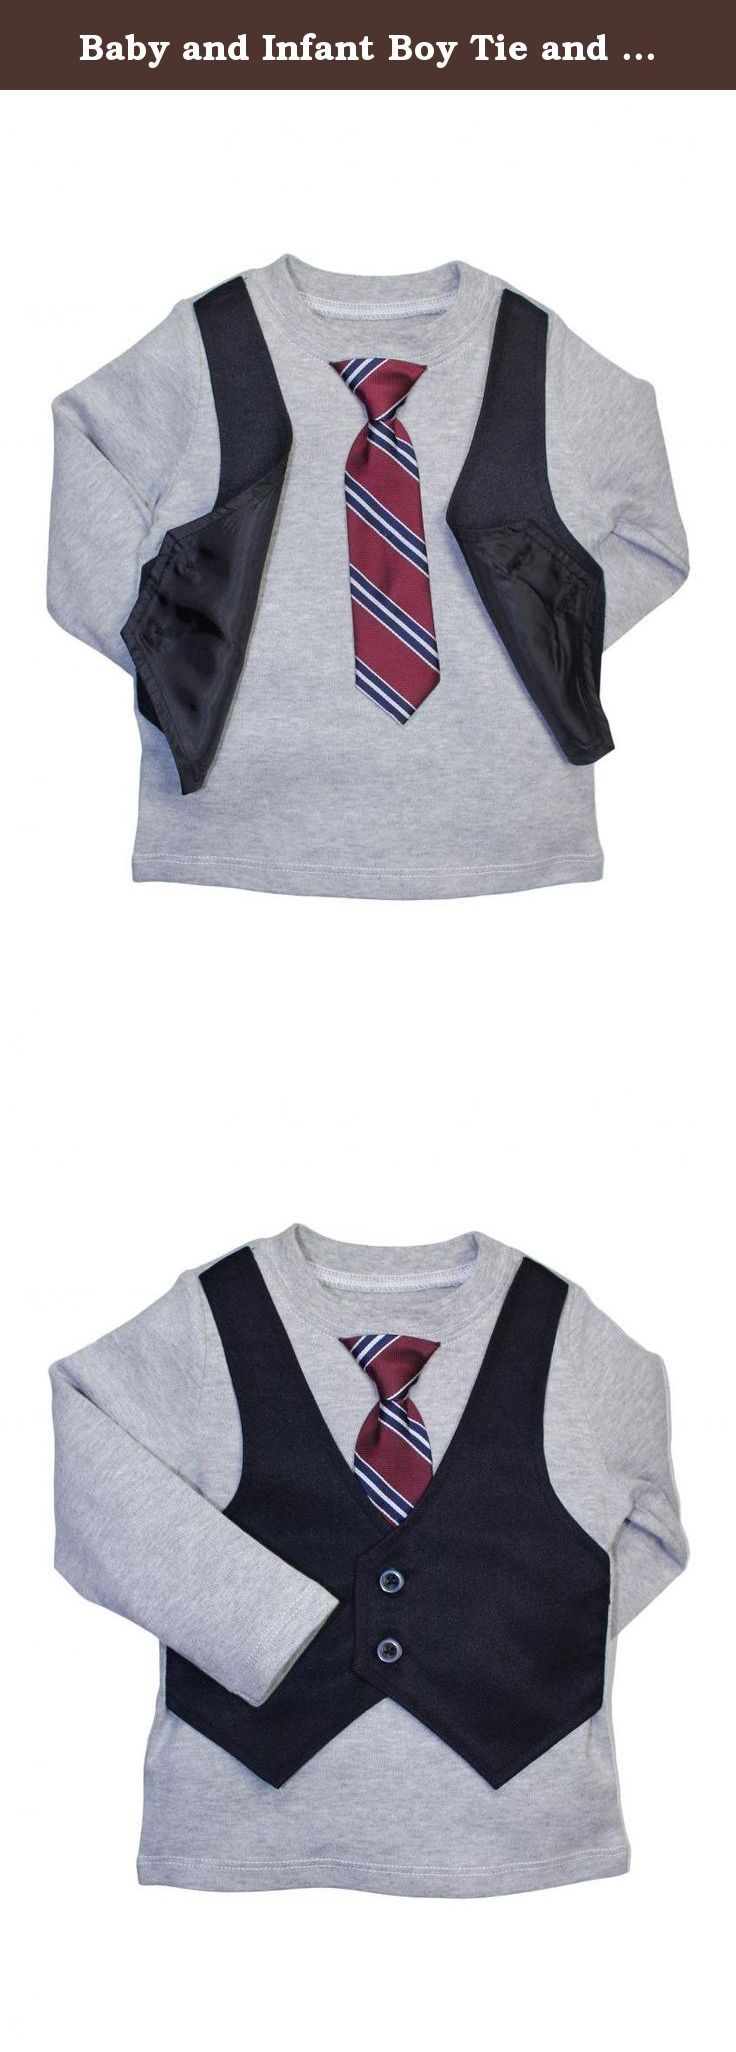 Baby and Infant Boy Tie and Vest Dress Up Long Sleeve T-Shirt by Blume - Gray - 18 Mths. Baby or toddler boys tie and vest dress up long sleeve t-shirt by Blume. The tie and vest are attached to the shirt, makes dressing up your toddler or baby a breeze or just keeping your little guy styling all the time.